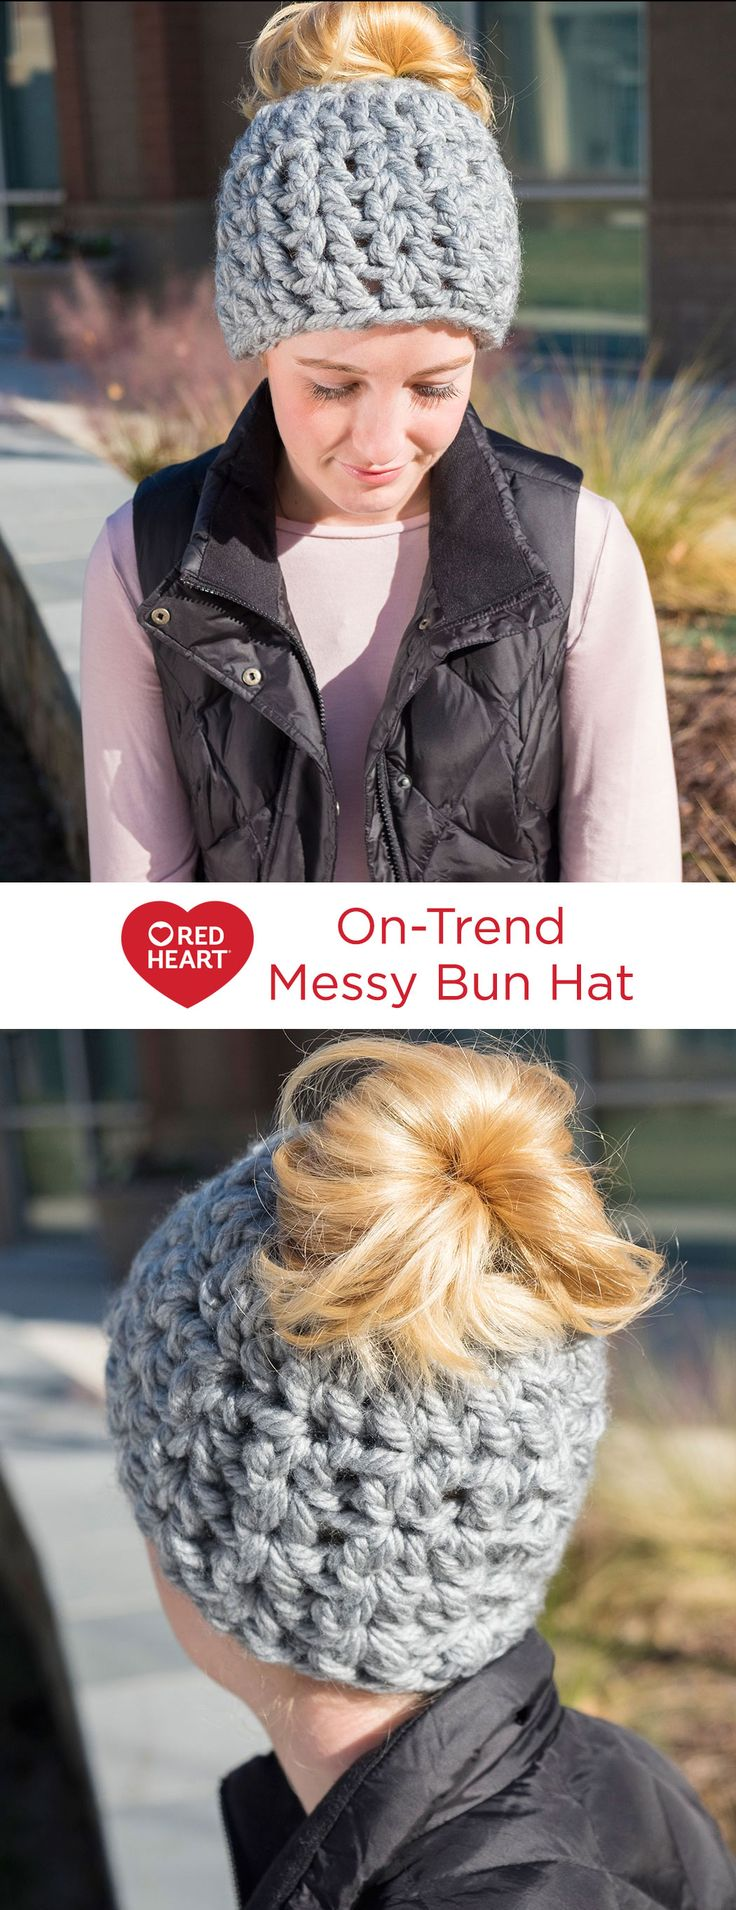 On-Trend Messy Bun Hat Free Crochet Pattern in Red Heart Yarns -- Using jumbo yarn and a big hook, this bun hat can be crocheted in record time. Working around an elastic band ponytail holder for your first round leaves a hole just the right size to allow your messy bun to stay outside your hat.